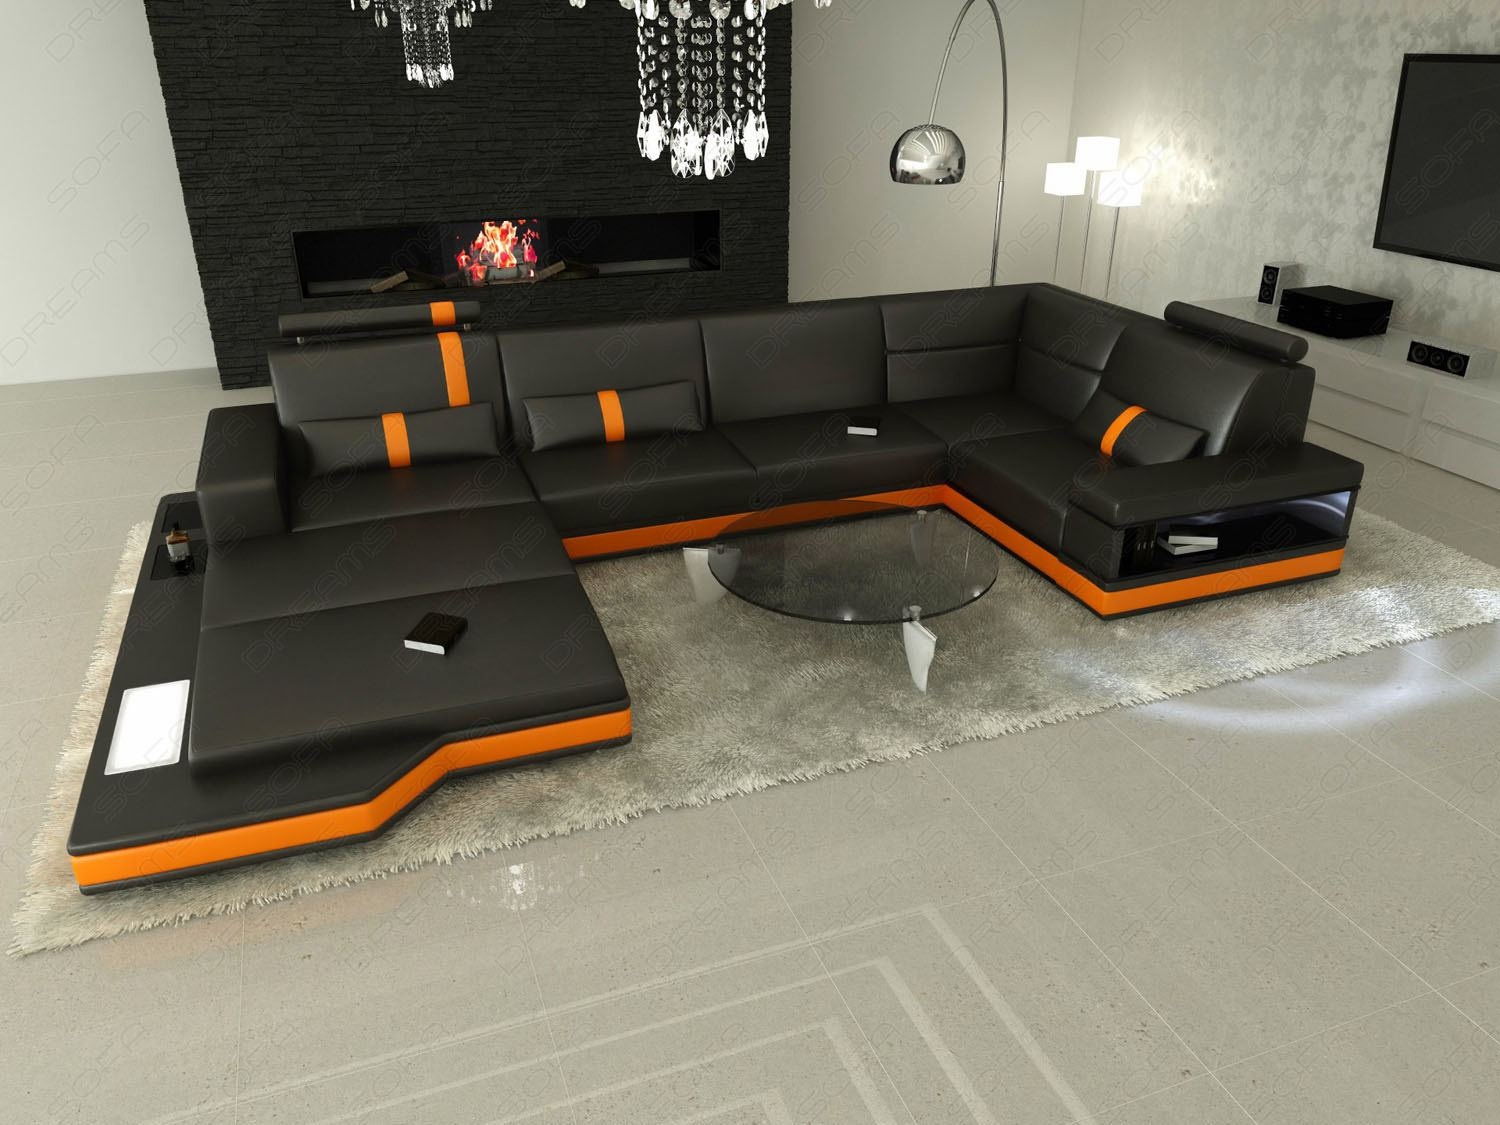 designersofa messana luxus ledersofa led couch sofa. Black Bedroom Furniture Sets. Home Design Ideas